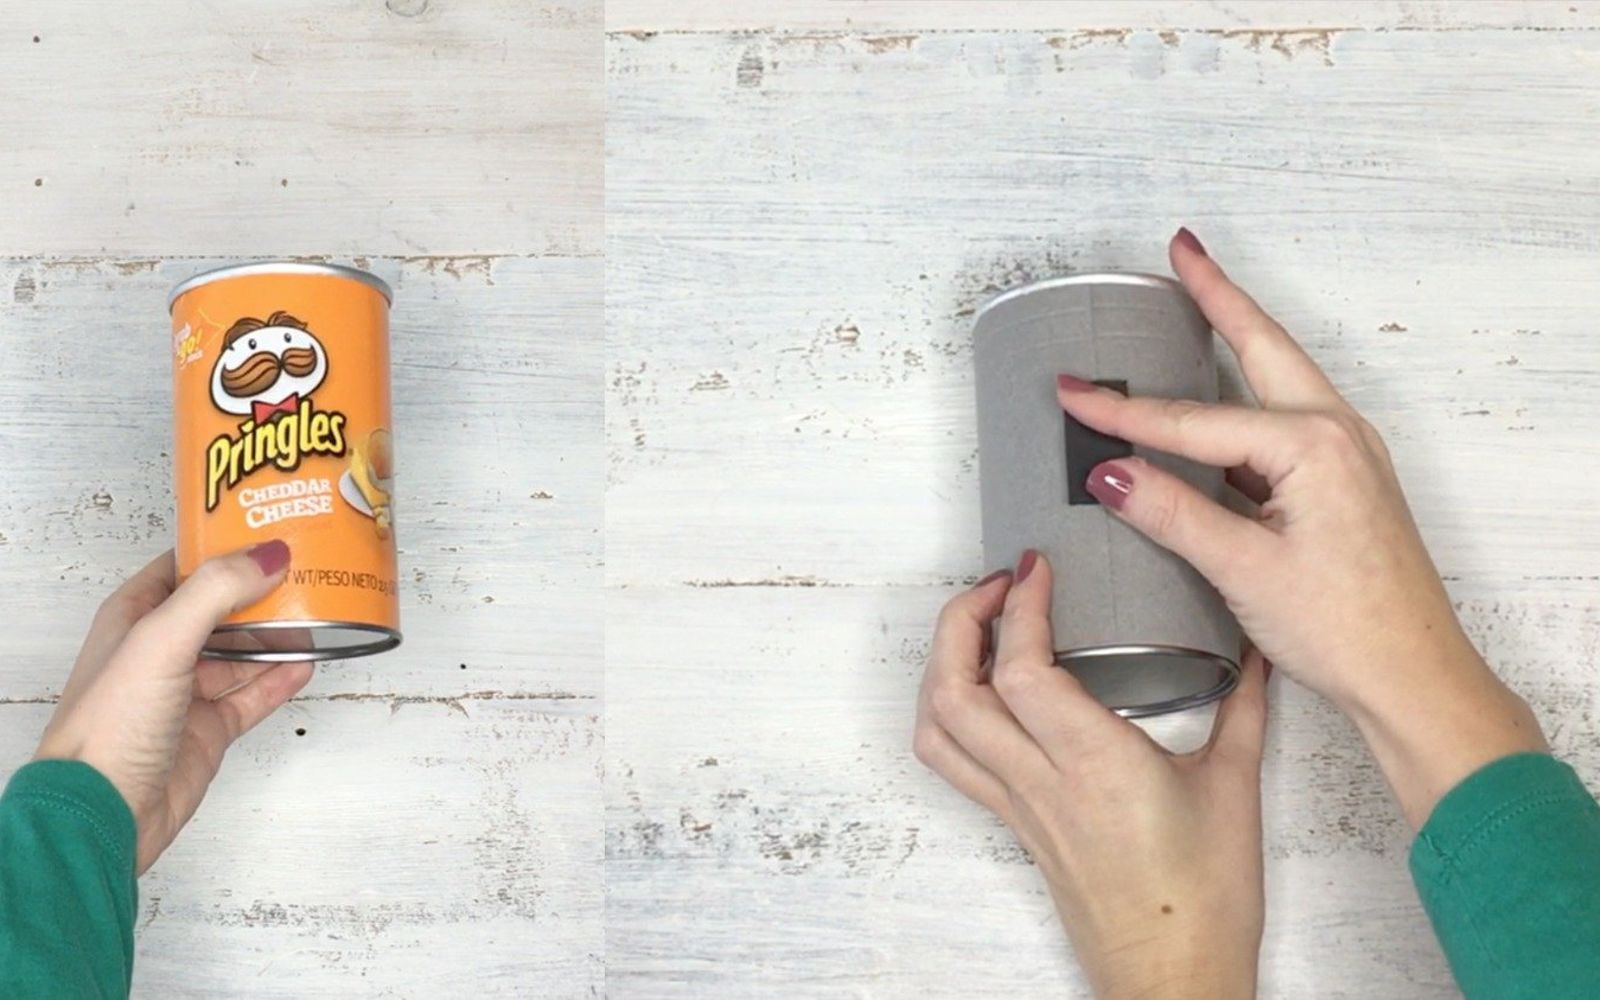 s transform tuna cans into gorgeous lighting in 9 simple steps, Hack 3 Cover in paper add magnet